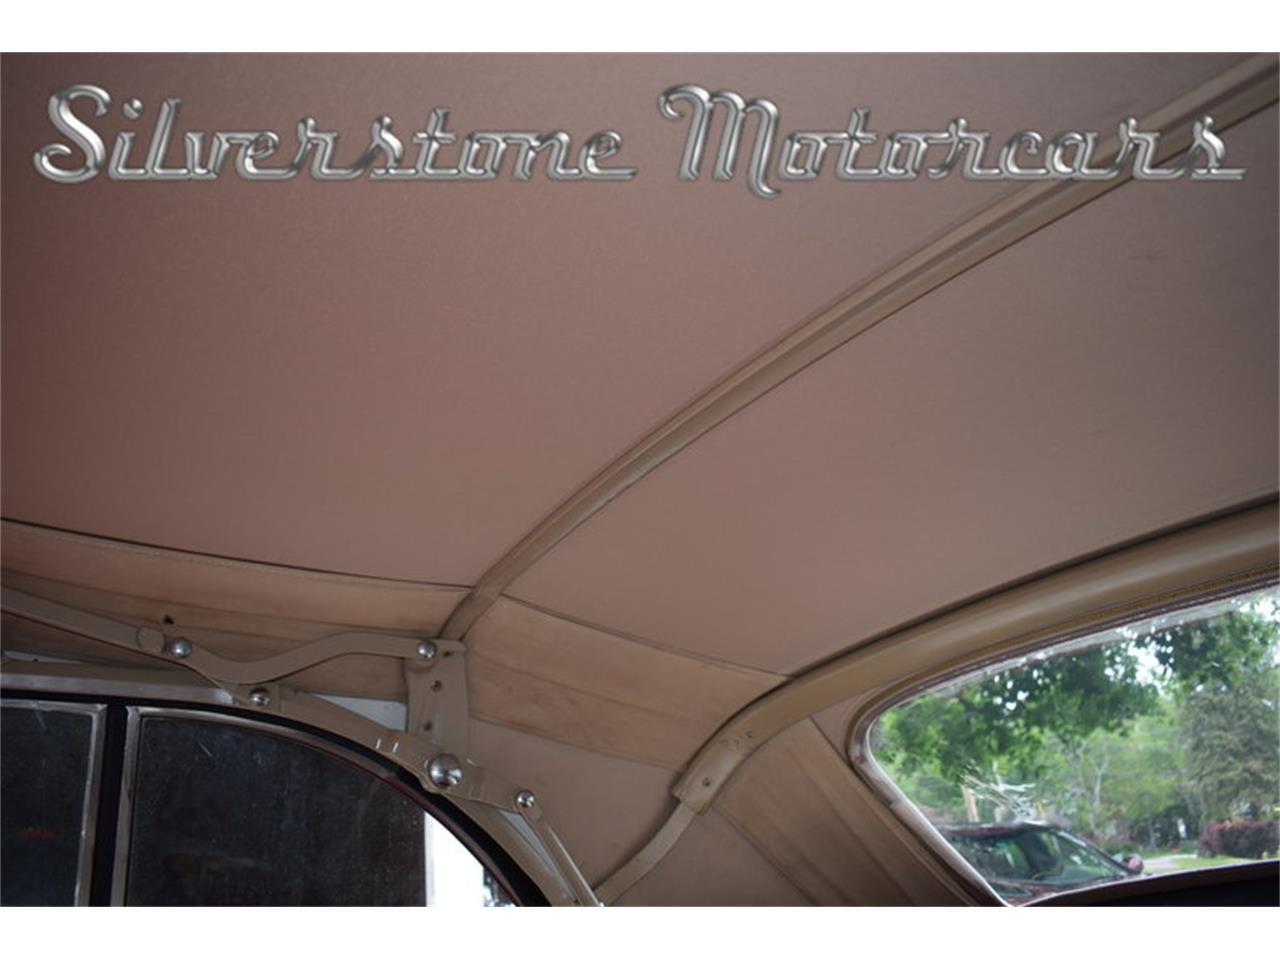 Large Picture of '51 Custom Deluxe located in North Andover Massachusetts - $39,000.00 Offered by Silverstone Motorcars - L79S